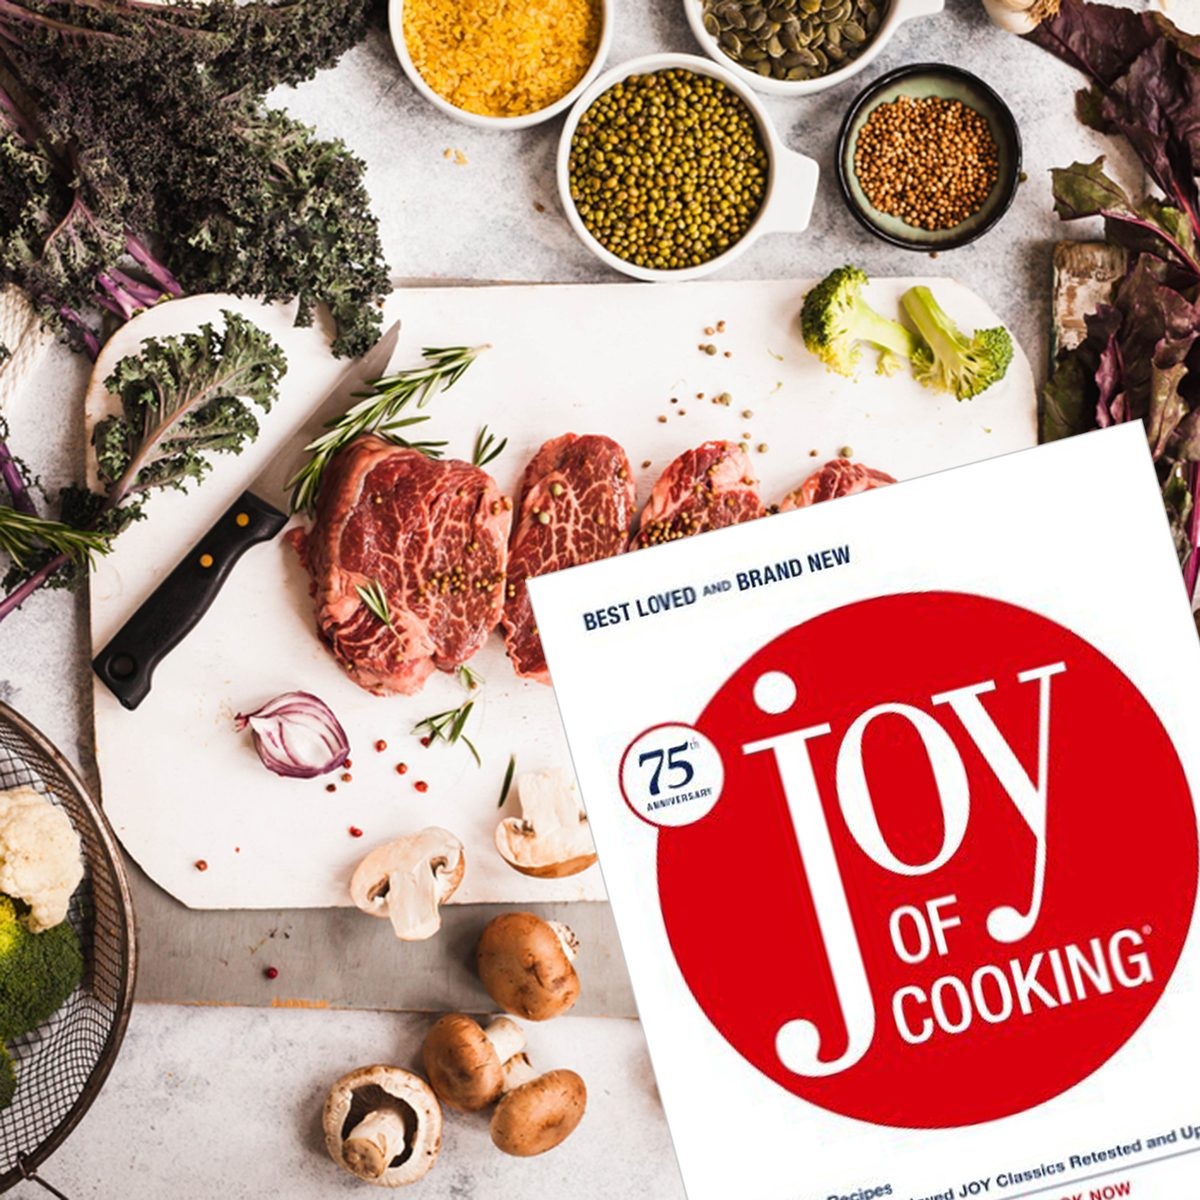 14 Lessons We Learned From The Joy of Cooking